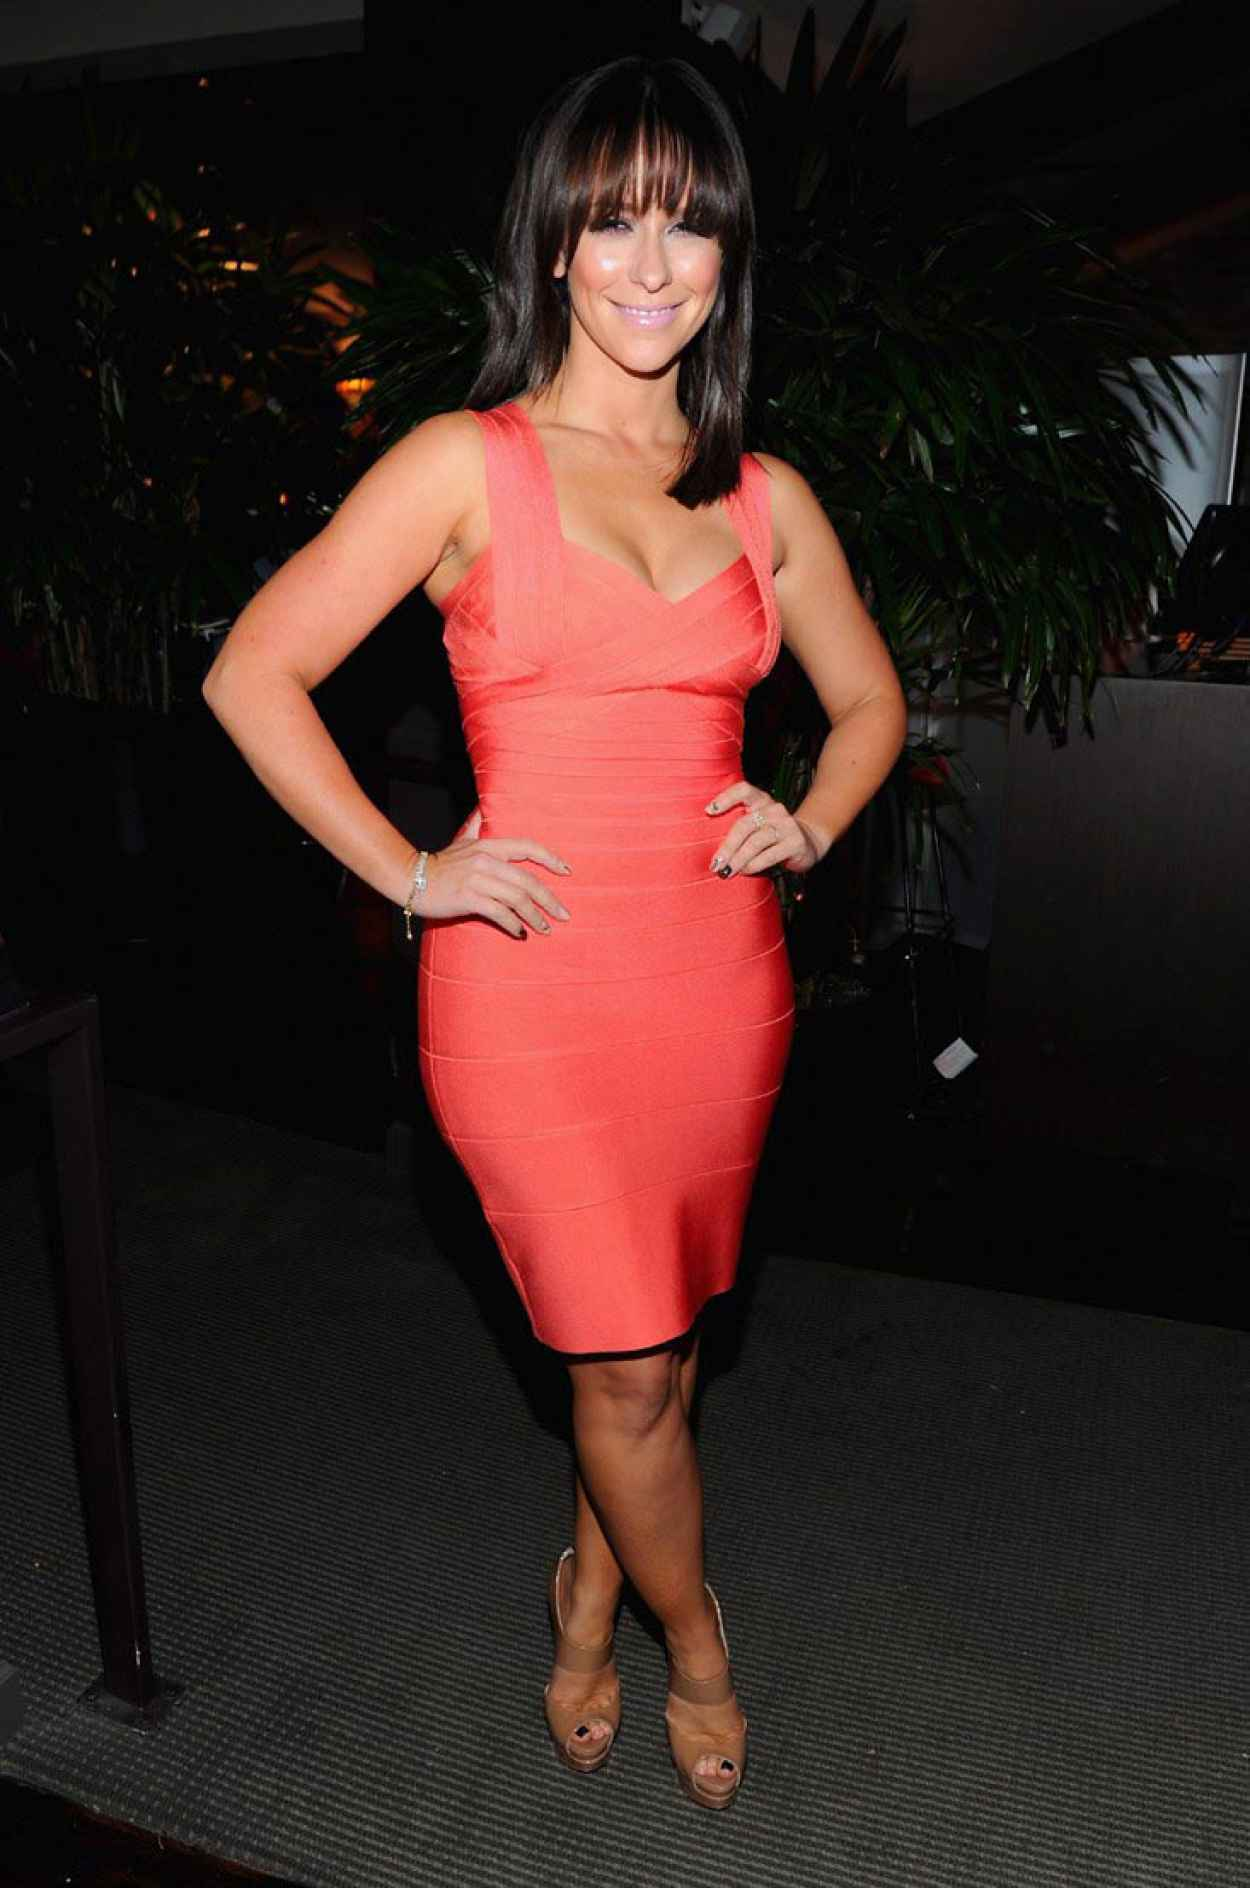 Jennifer Love Hewitt in Red Dress - Animated Gif-1